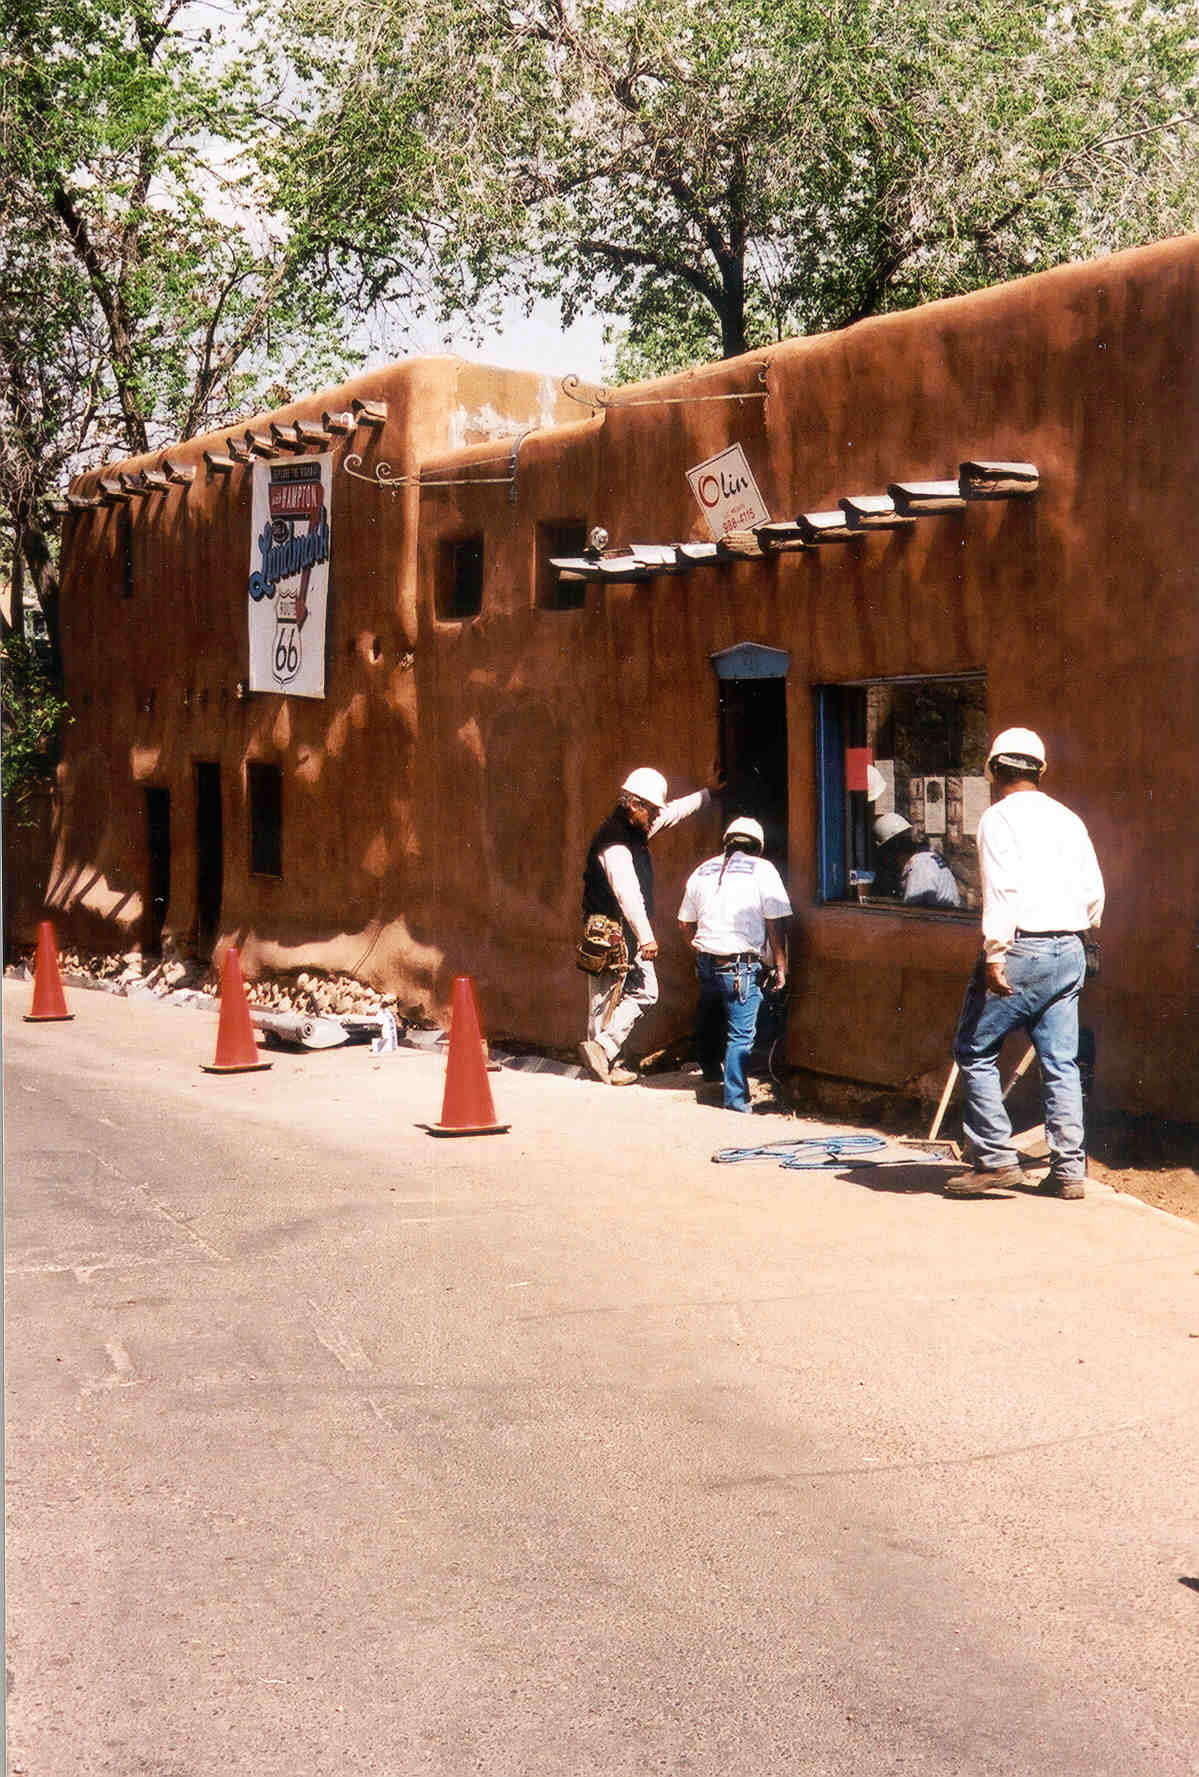 On May 15, 2003, Hampton Hotel volunteers converged at the Oldest House under the guidance of Cornerstones, a local non-profit organization dedicated to restoring rural Hispanic villages and Indian Pueblos, to rehabilitate this historic structure. The refurbishment involved recreating its original mud bricks and plaster substance to re-plaster the interior walls; re-roof the structure; repair its entry door; remove street concrete pavement that was retaining moisture and damaging its walls; creating a bed o